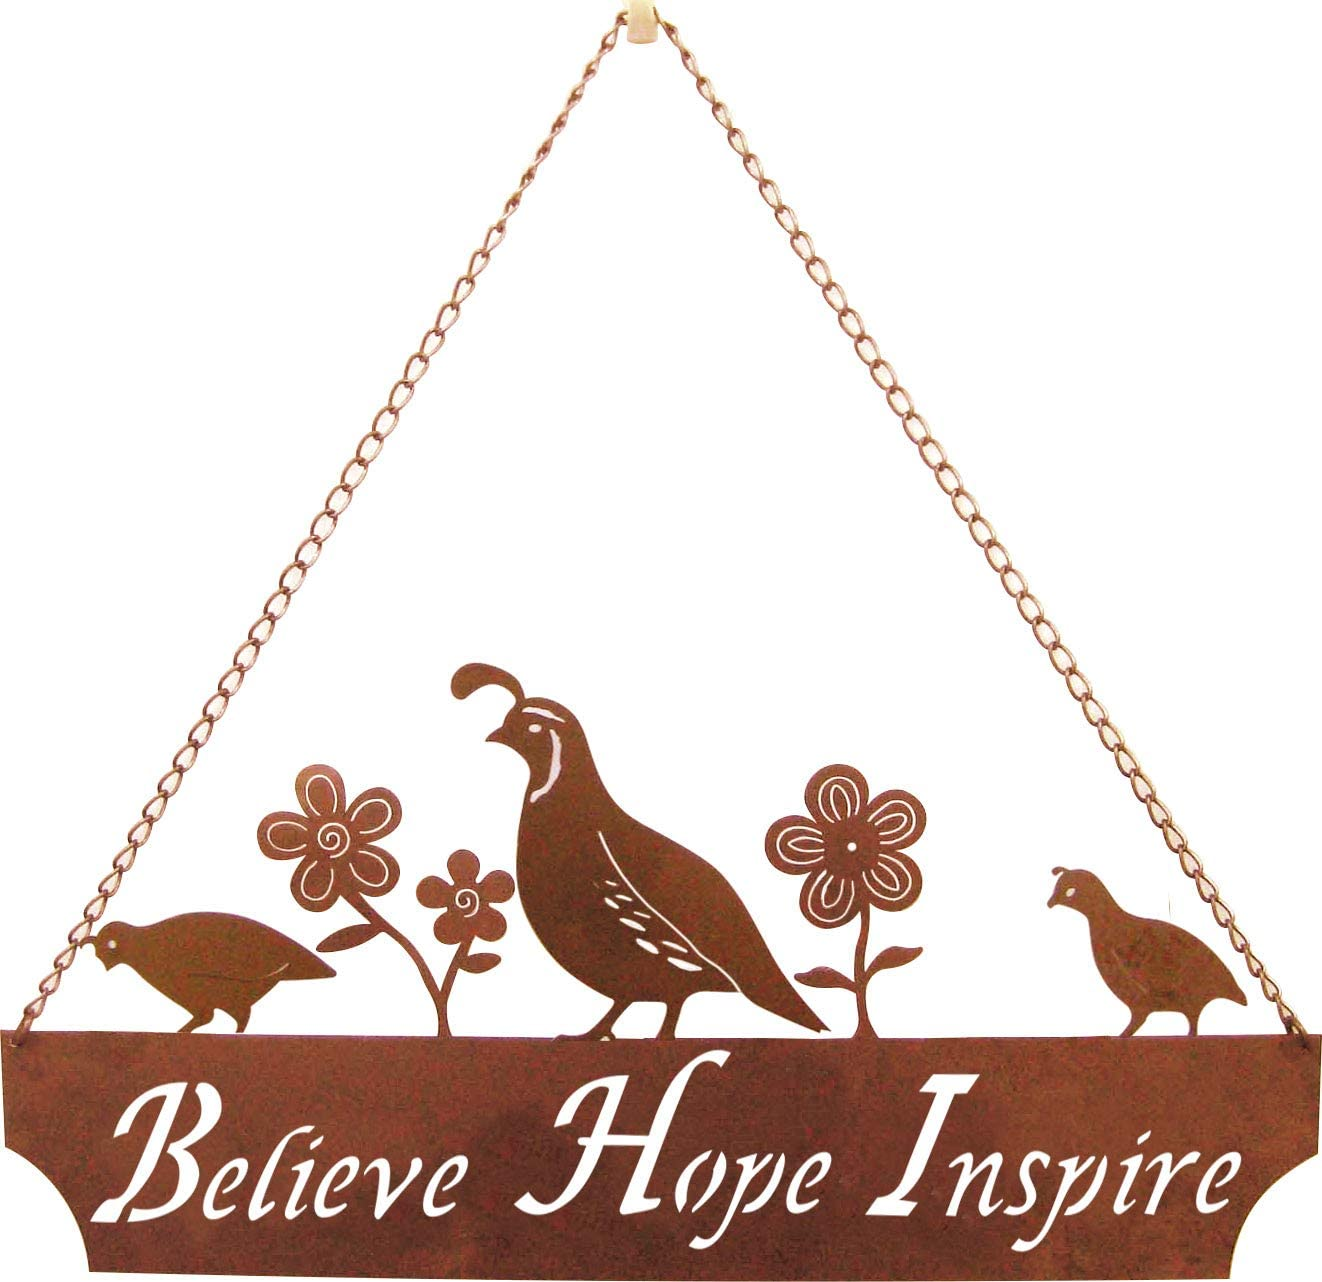 California Home and Garden CH303 Hanging Metal Quail Family Believe-Hope-Inspire Sign with Flowers, Rustic Look Artwork, 20 Inch Wide, Brownish Red